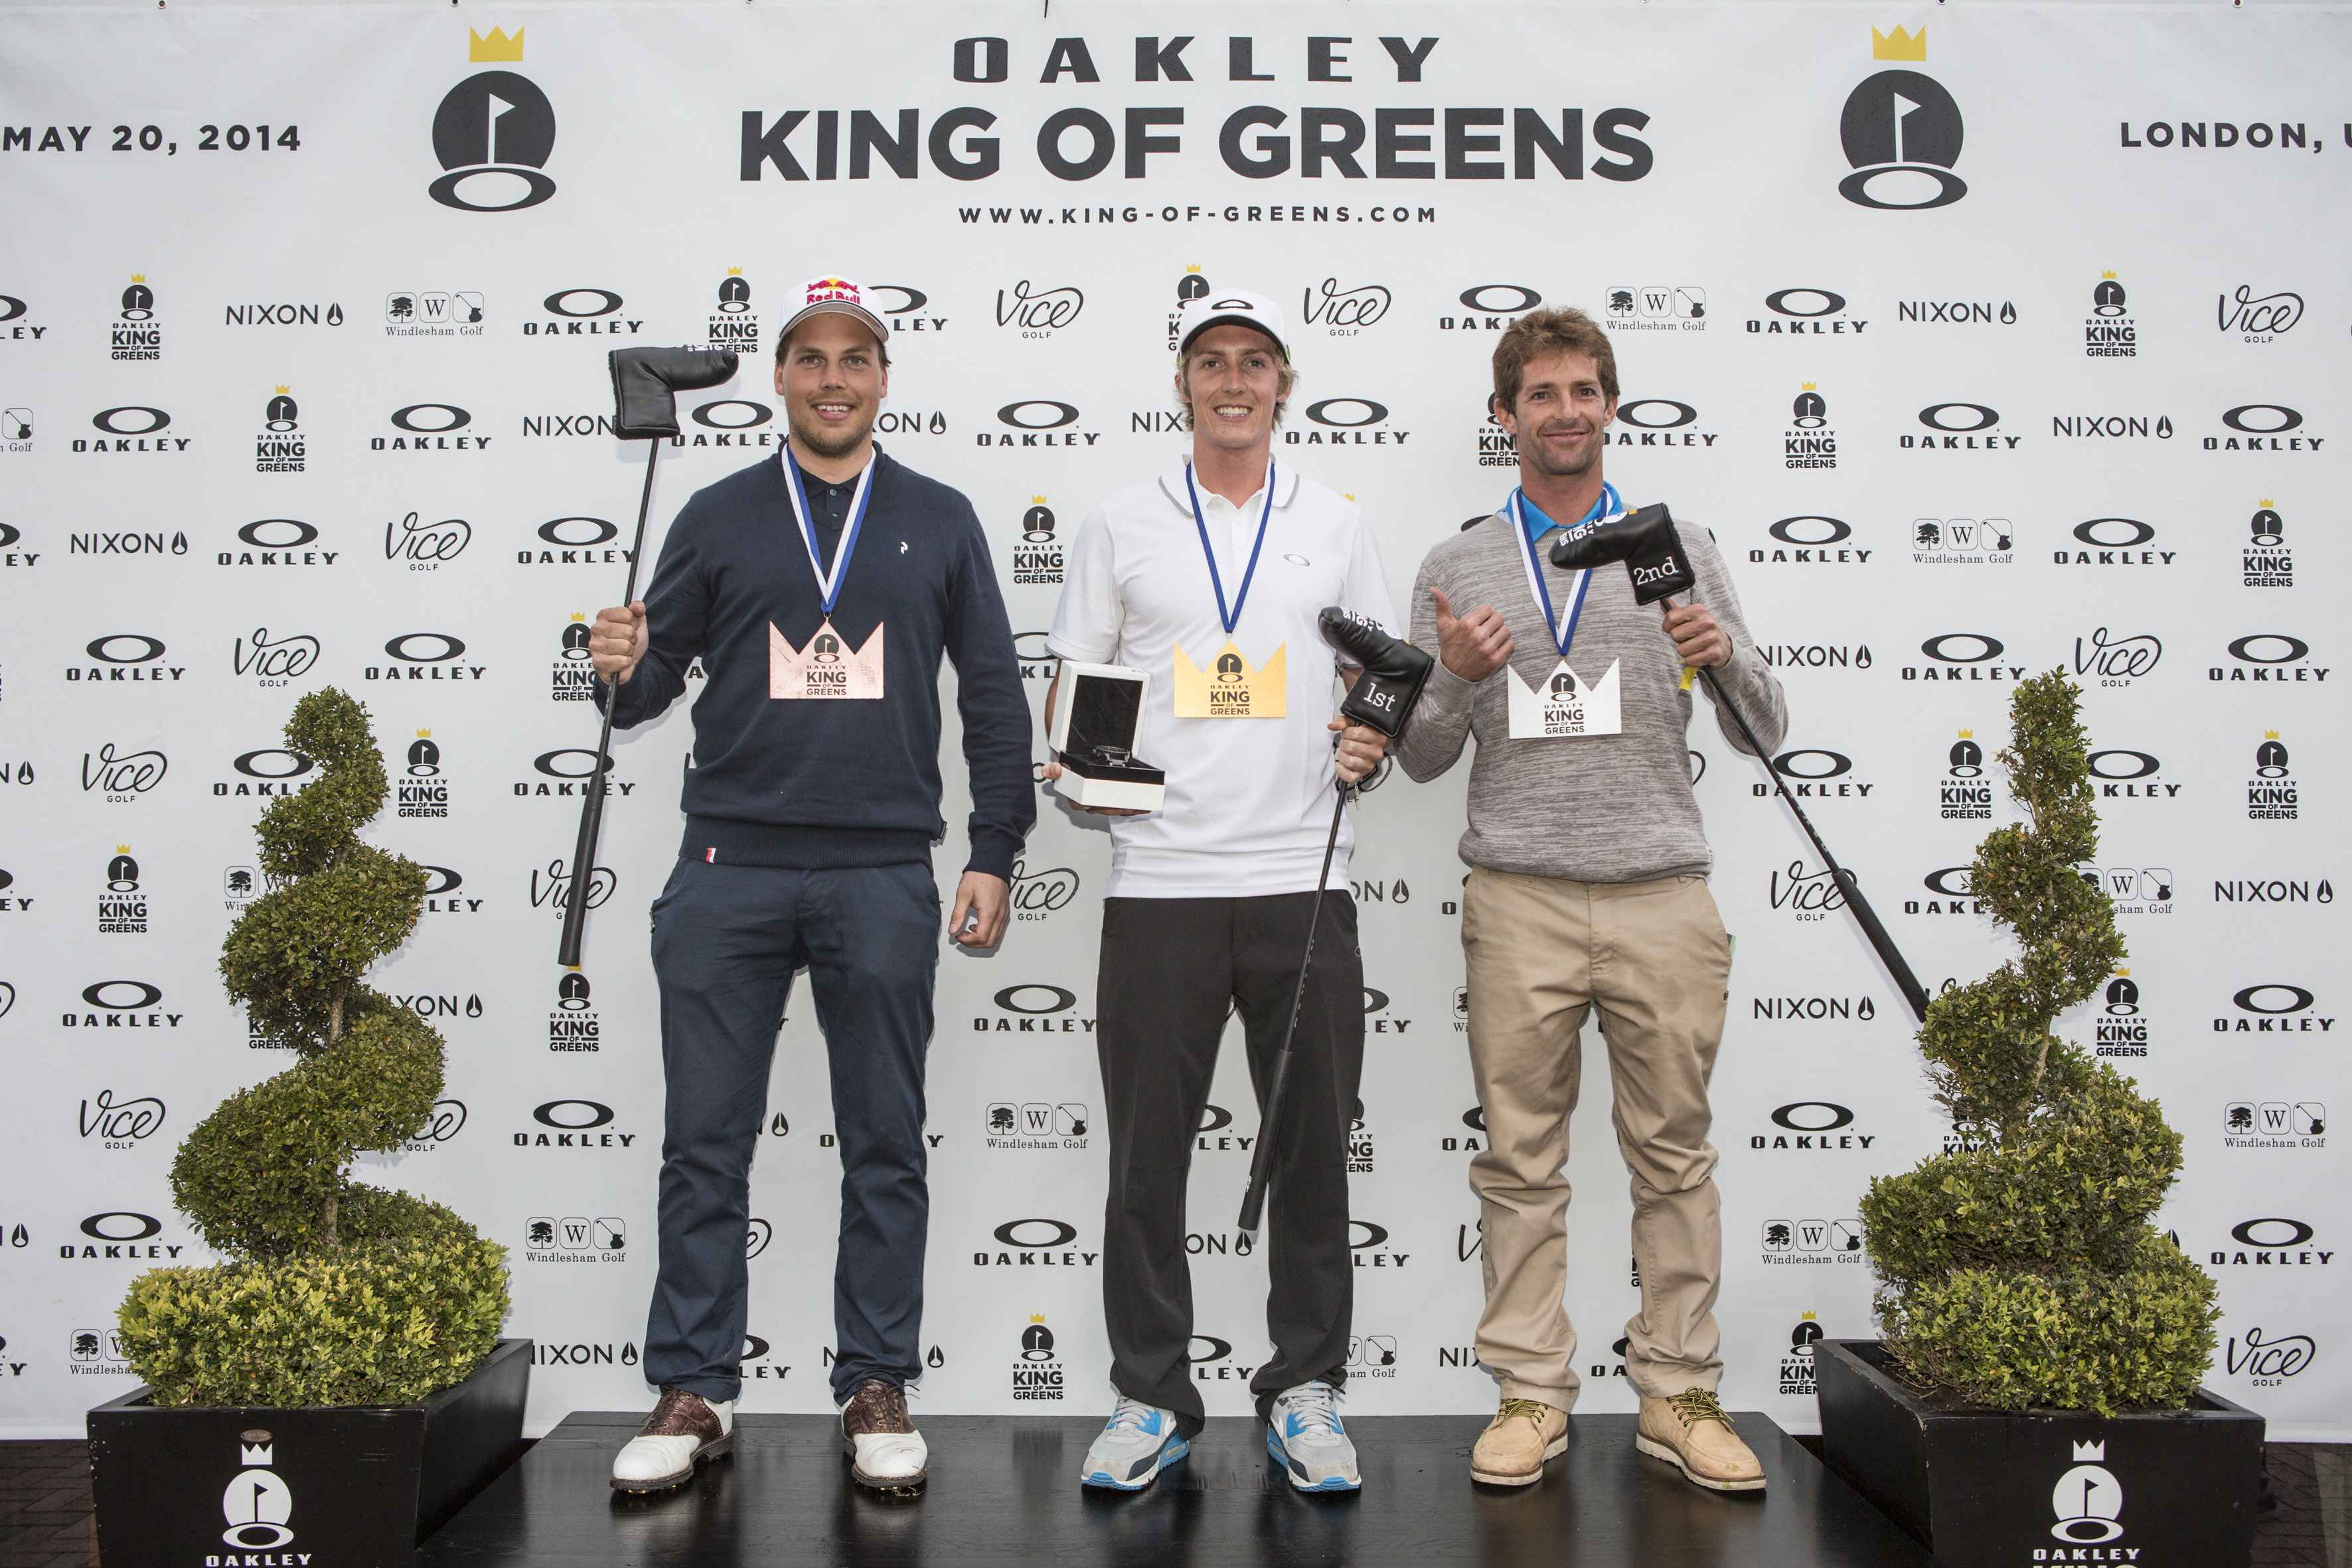 OAKLEY KING OF GREENS 2014